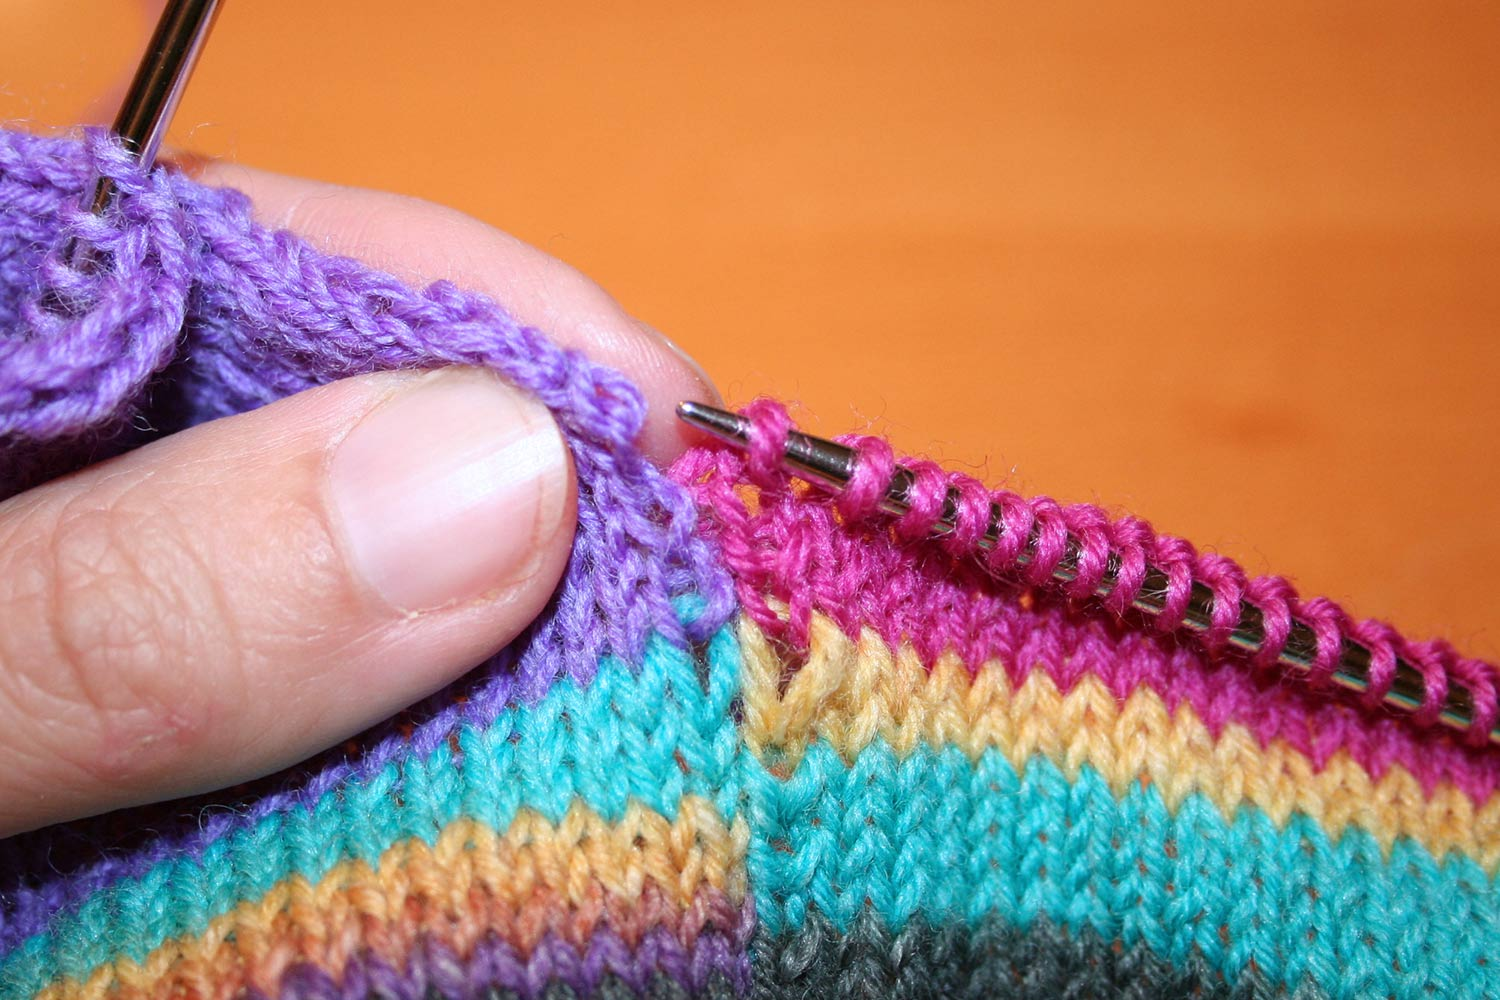 Reworking and intarsia colour block with right needle pointing towards selvedge loop where it will be joined.